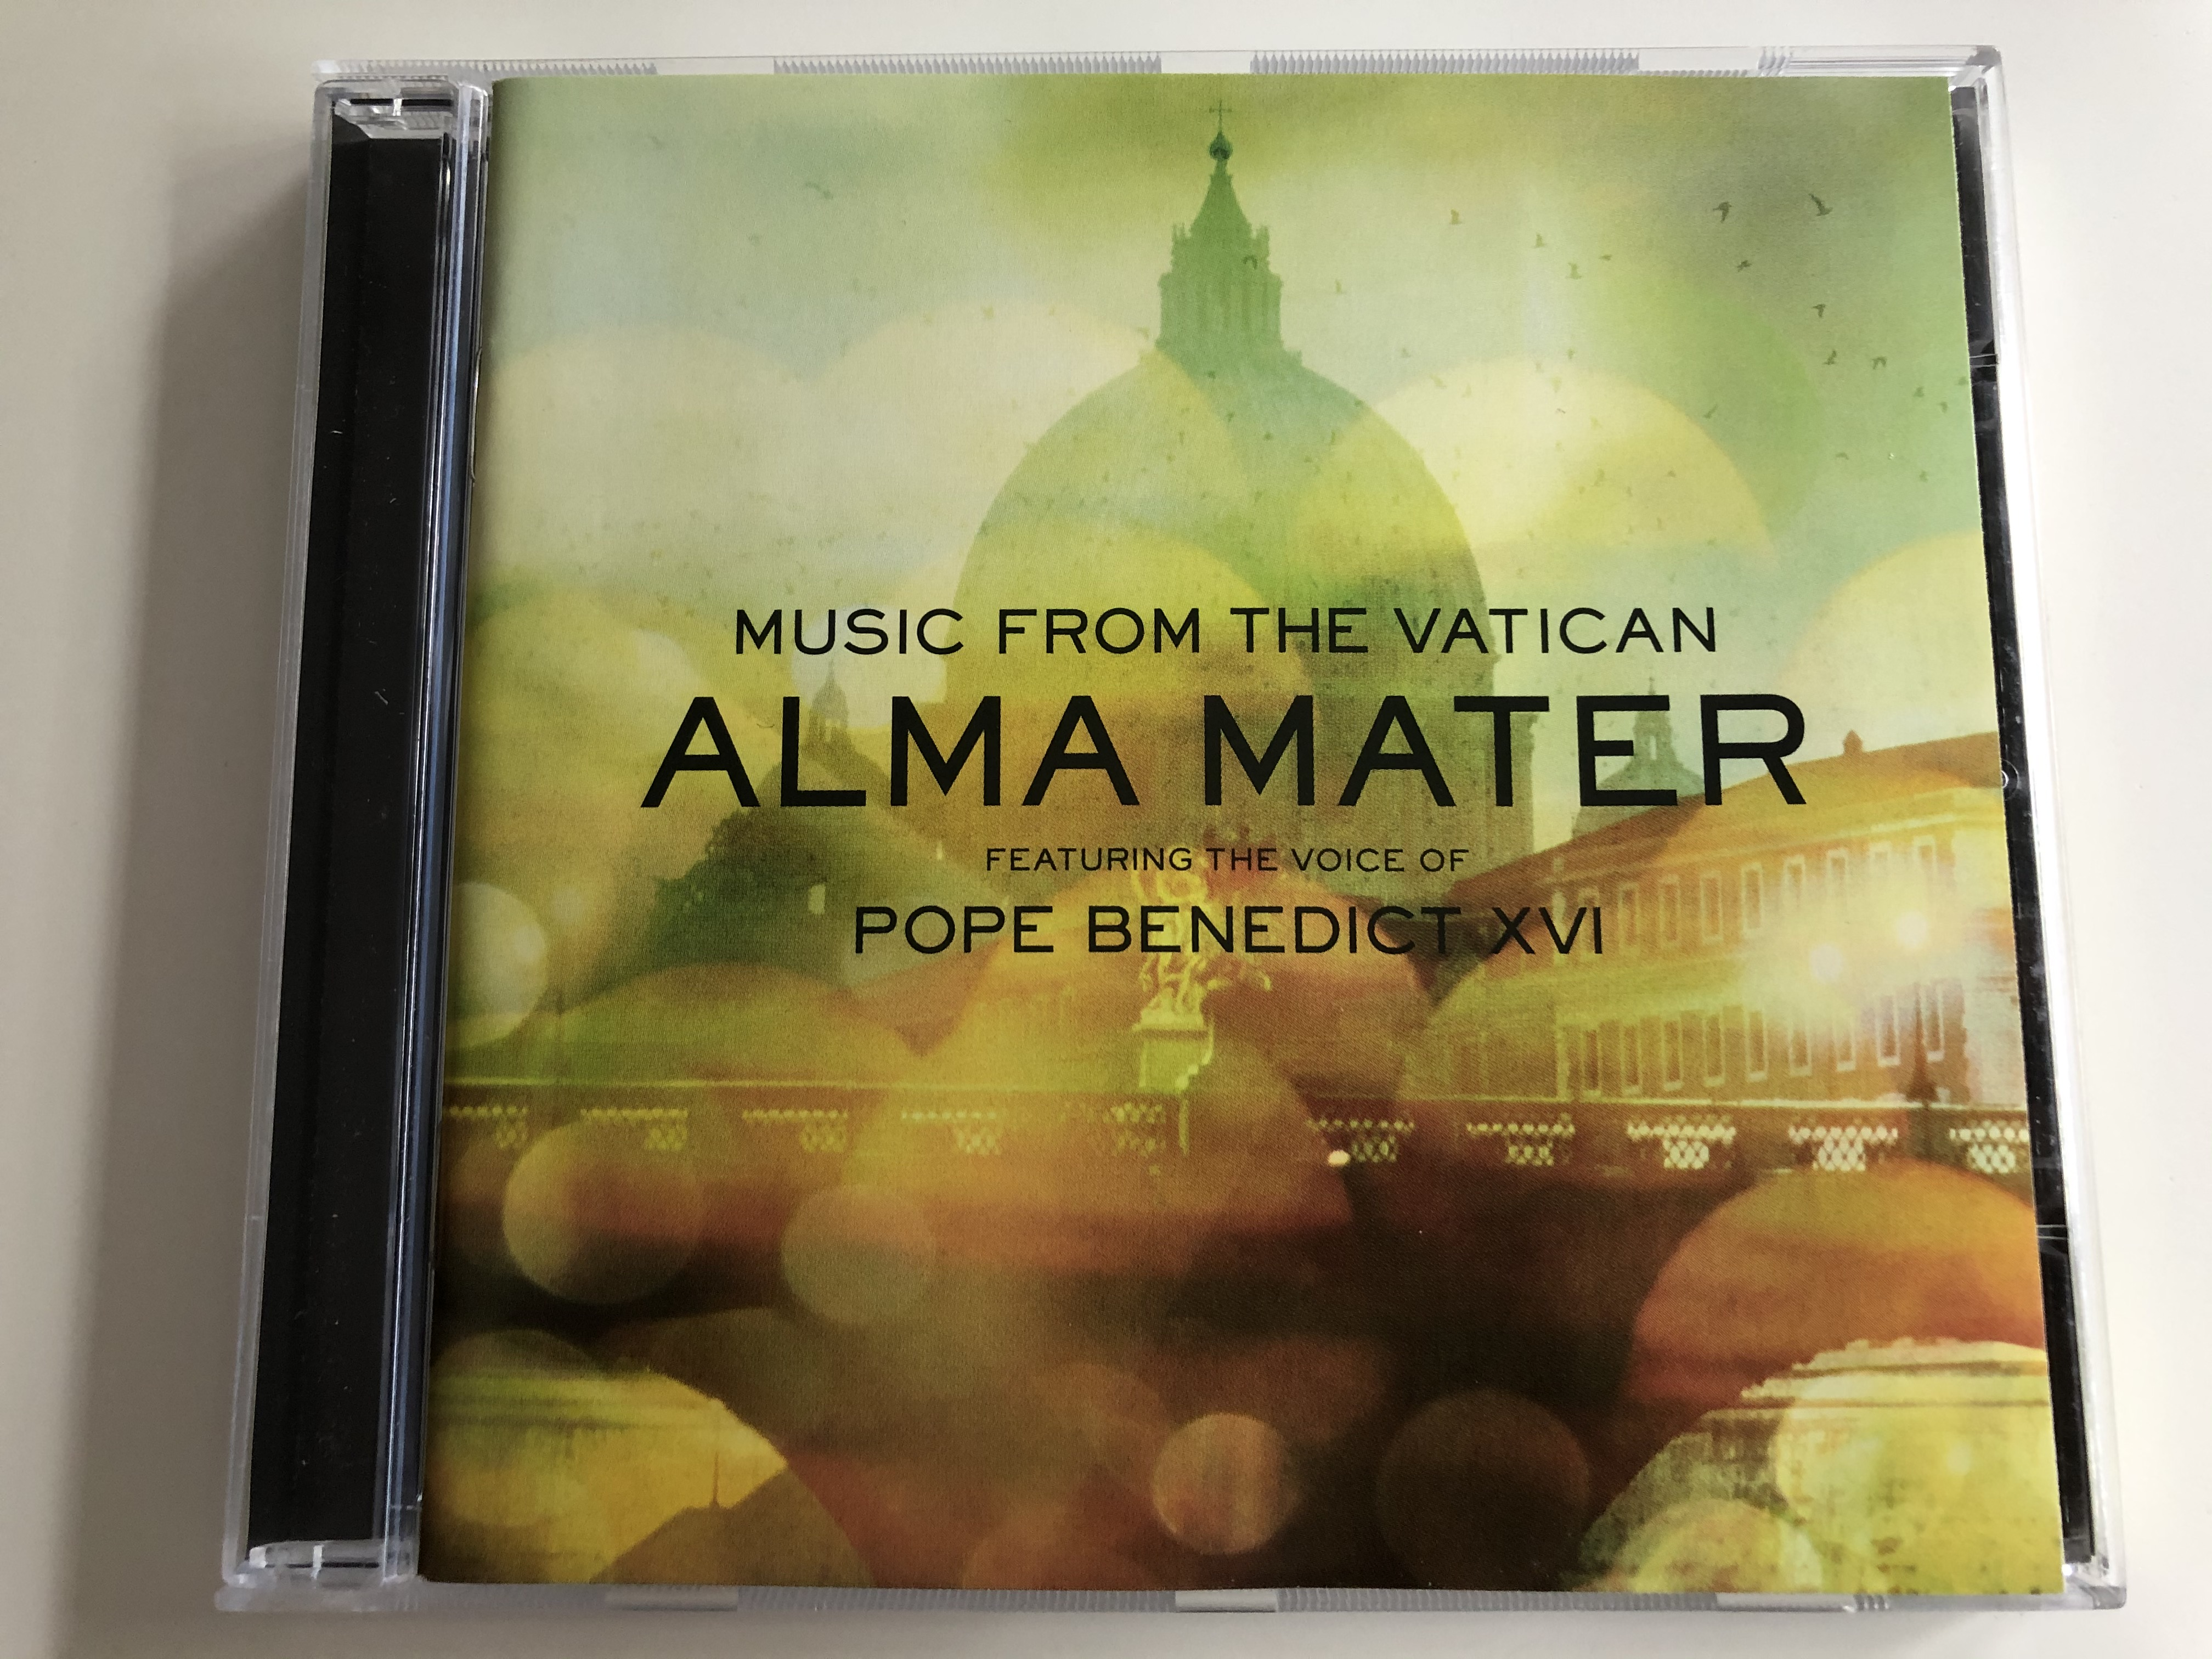 music-from-the-vatican-alma-mater-featuring-the-voice-of-pope-benedict-xvi-san-paolo-audio-cd-2009-2719619-1-.jpg